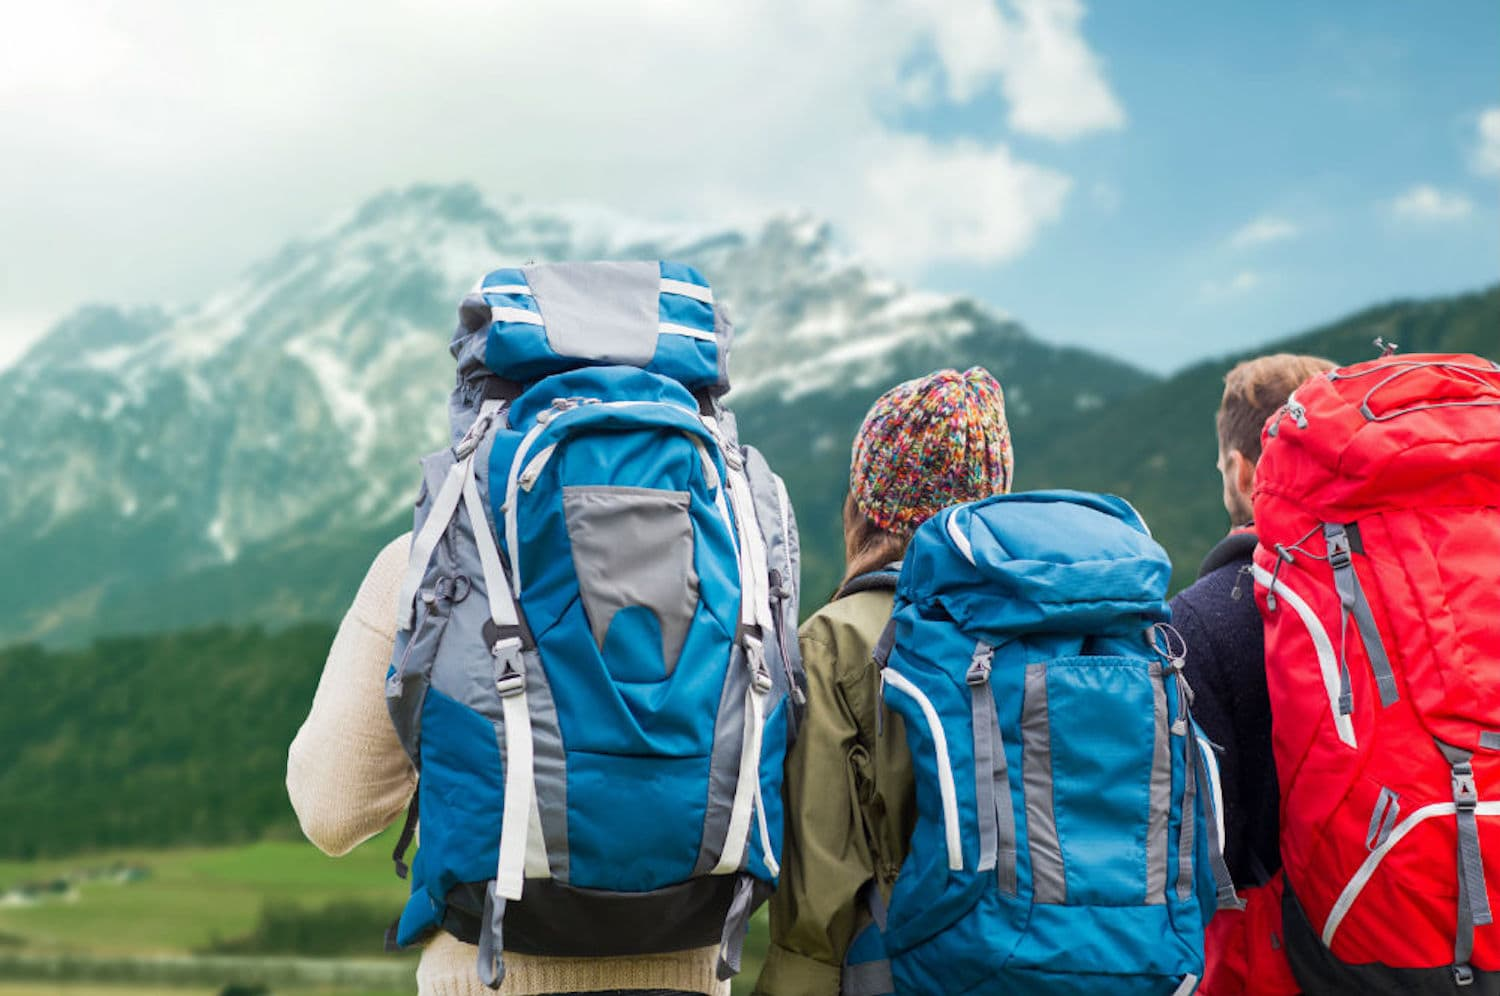 Three persons are standing with the backpacks and looking over to the mountain